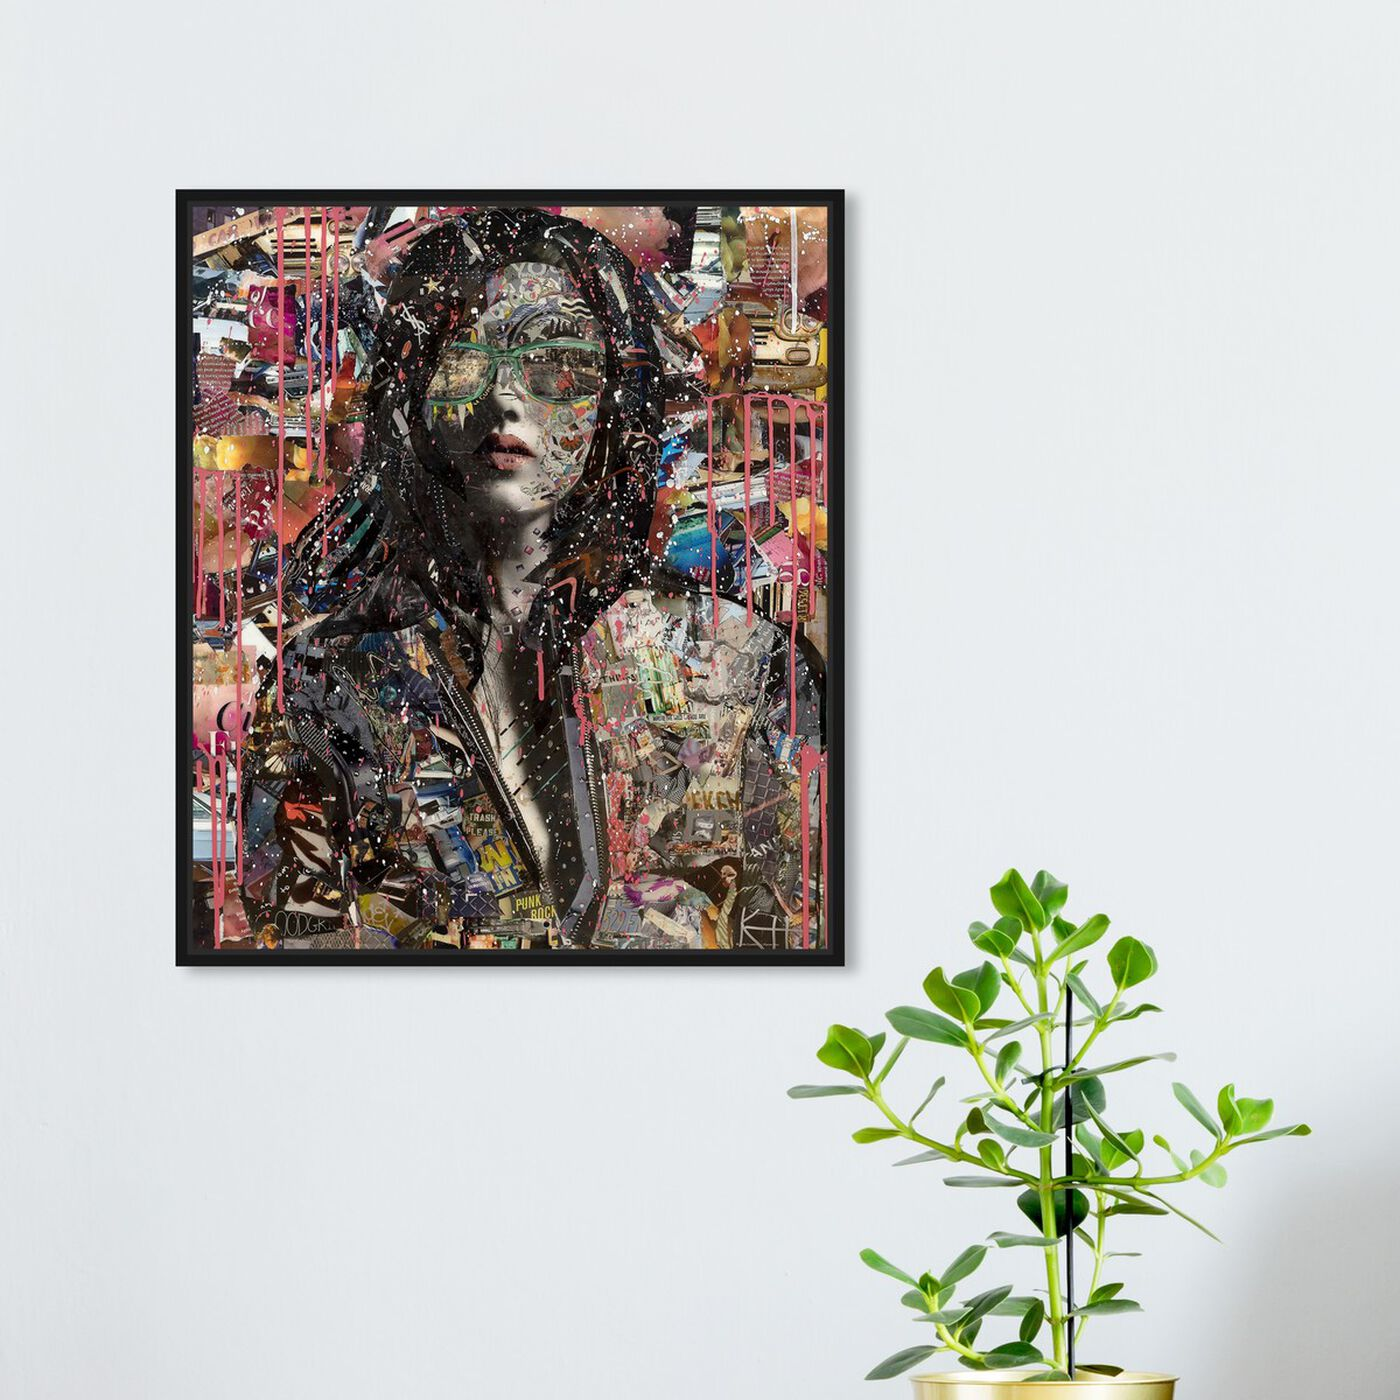 Hanging view of Katy Hirschfeld - Beauty in Pink featuring fashion and glam and portraits art.